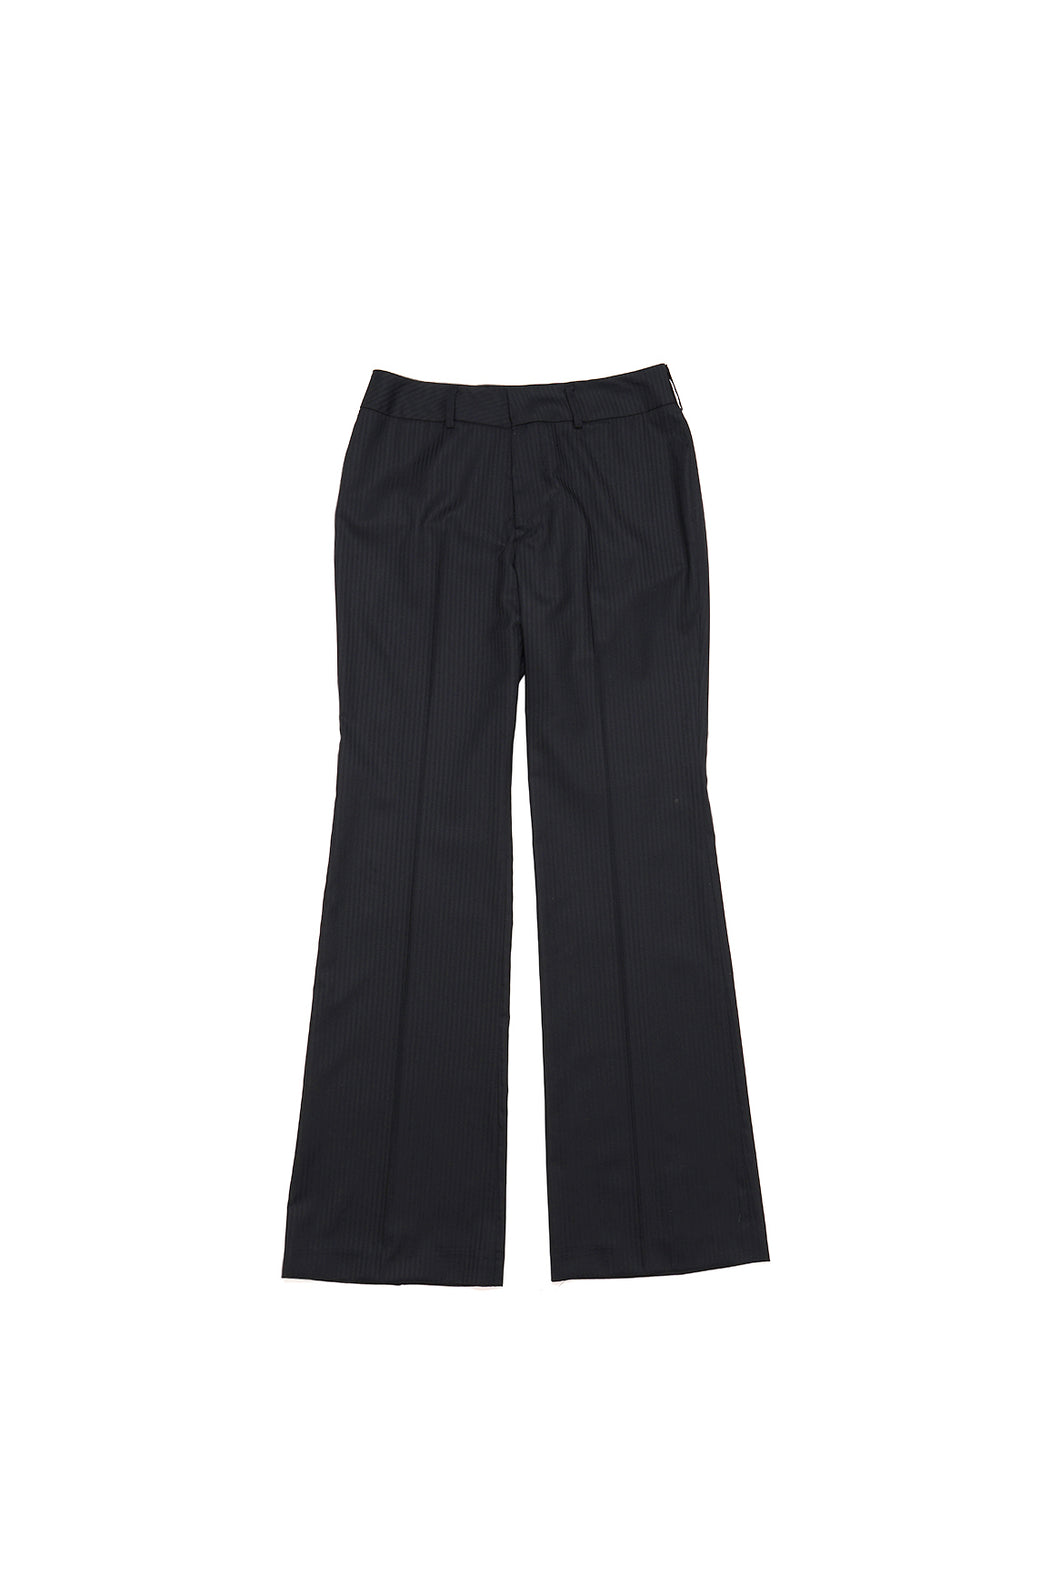 Striped Wool Flared Pants - Black